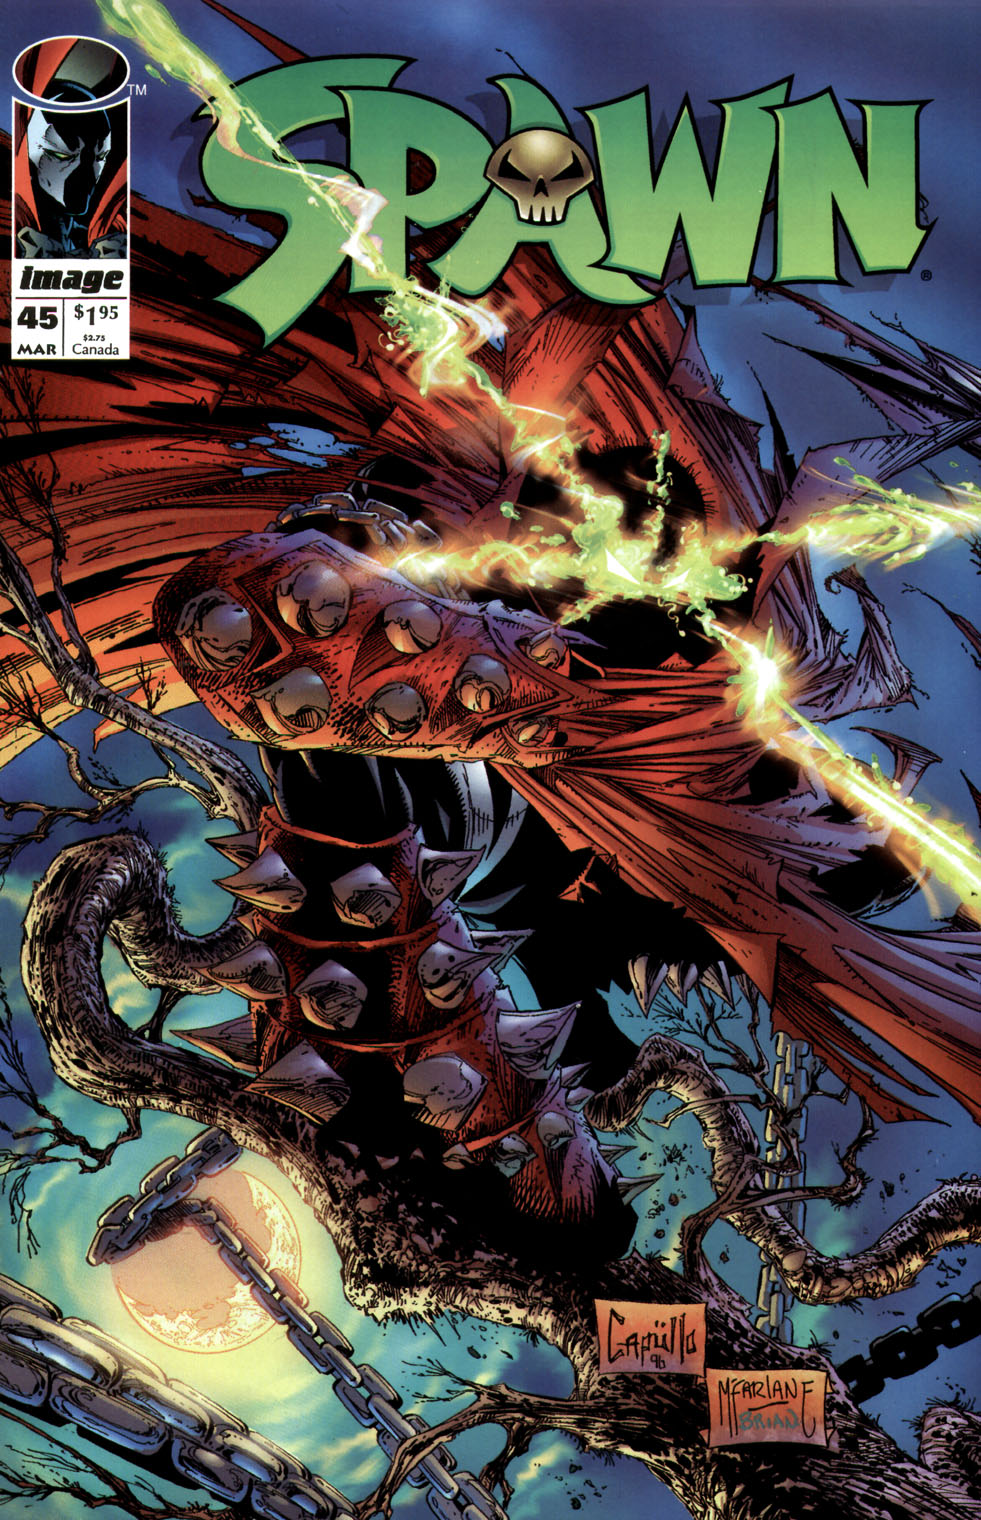 Spawn (Comic) images Spawn HD wallpaper and background photos ...: www.fanpop.com/clubs/spawn-comic/images/25172833/title/spawn-photo